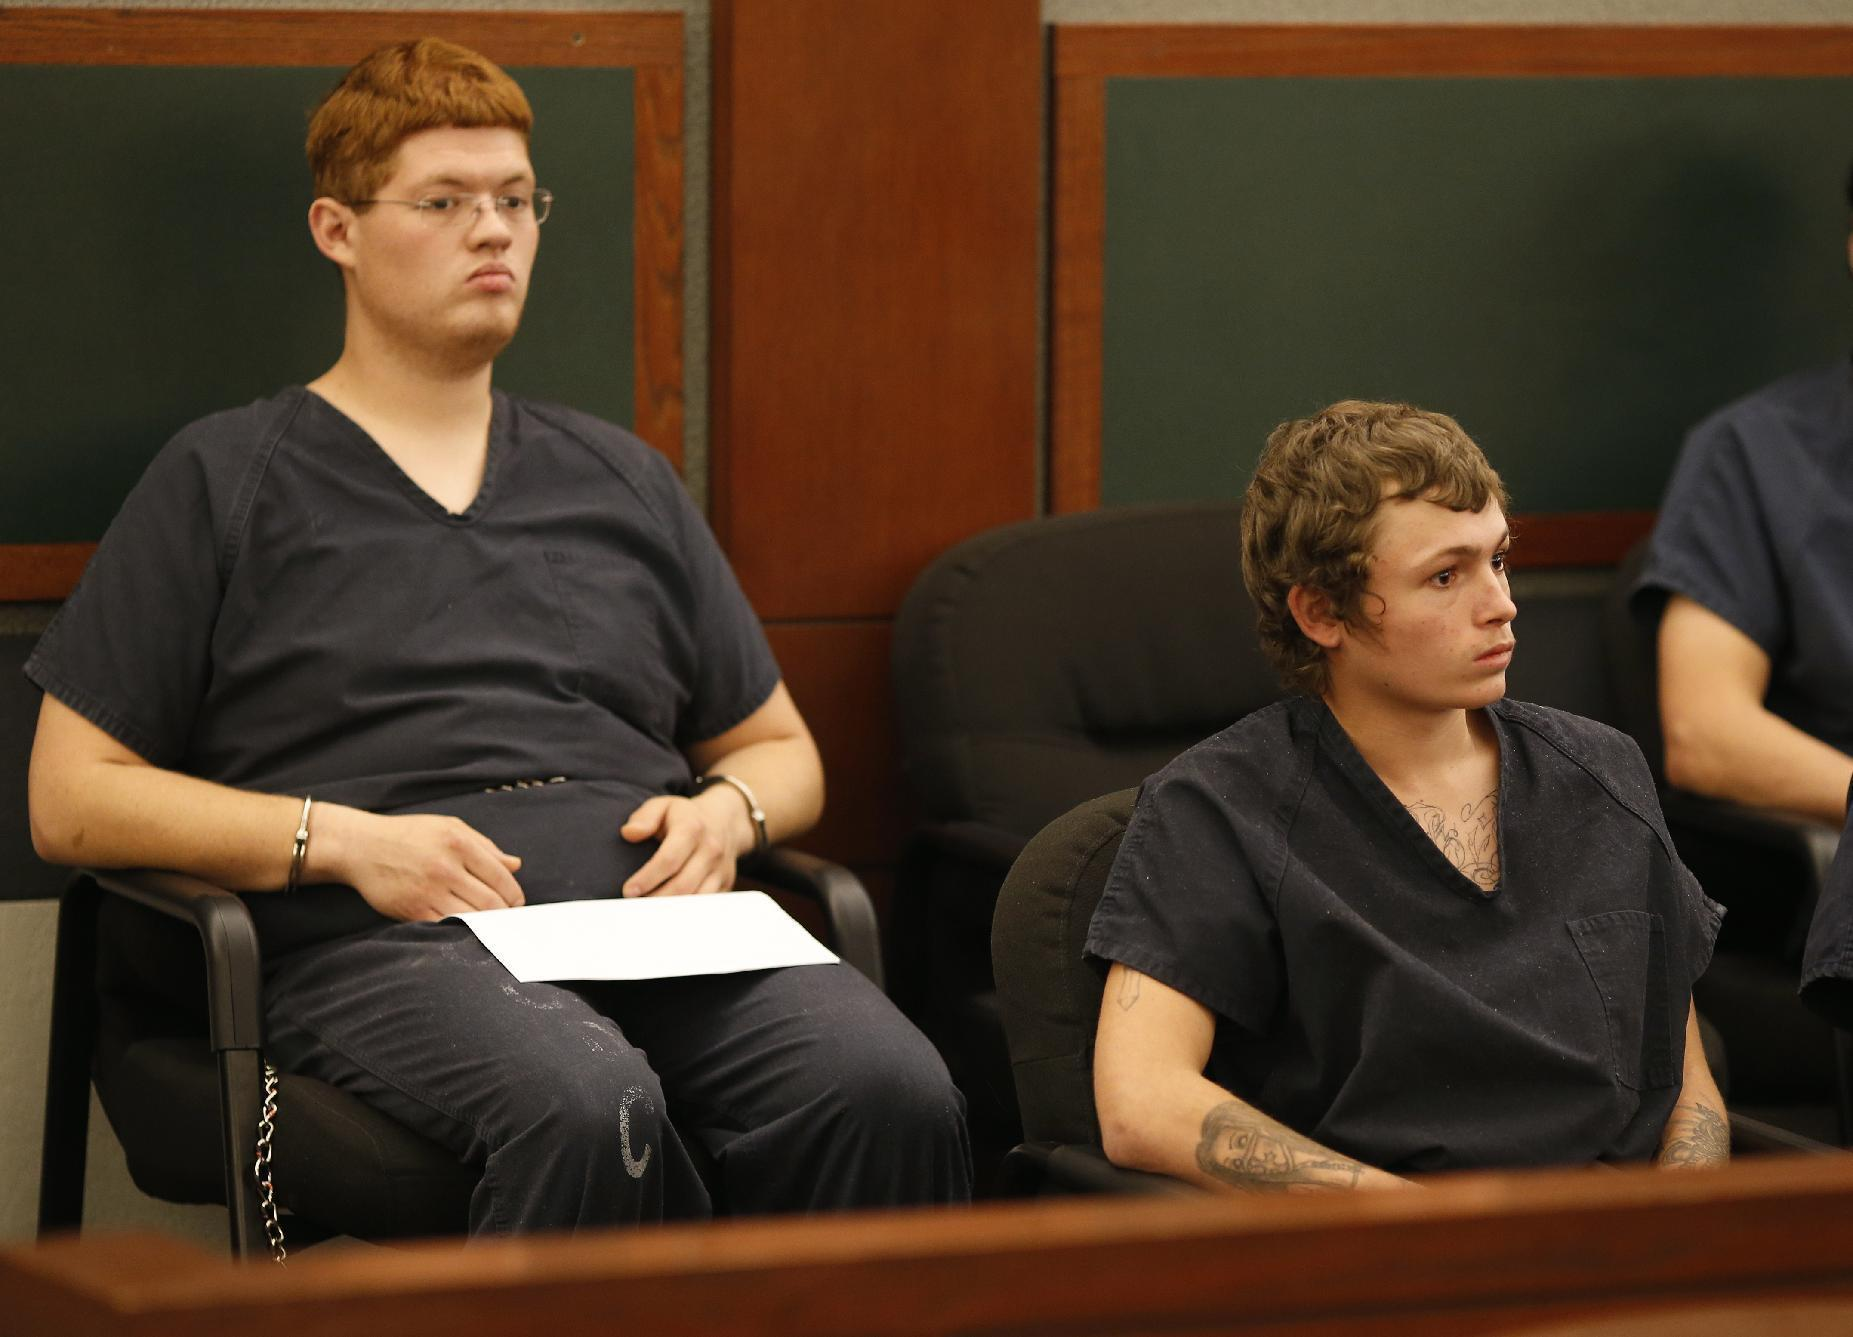 Co-defendant pleads not guilty in Vegas mom slaying case